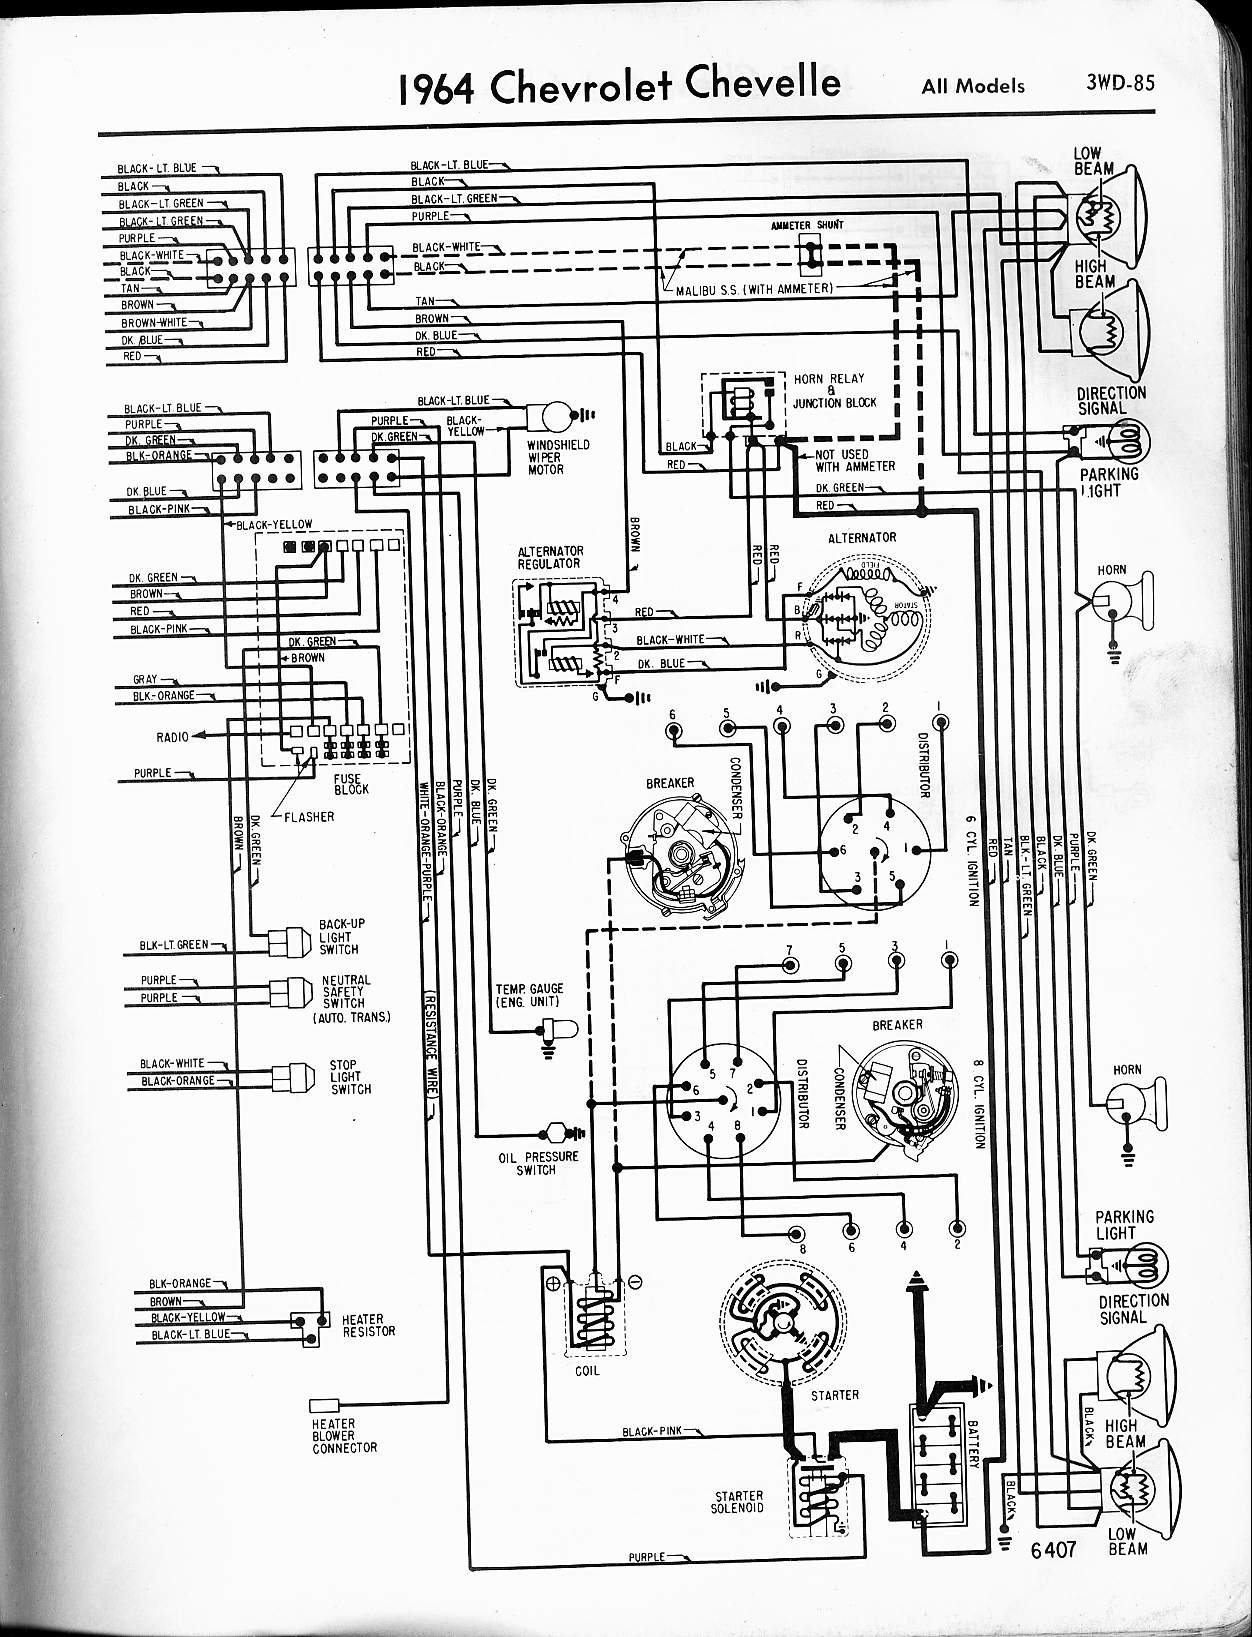 Chevy Diagrams 1964 Impala Fuse Box Diagram 1964 Chevelle Fuse Box Diagram